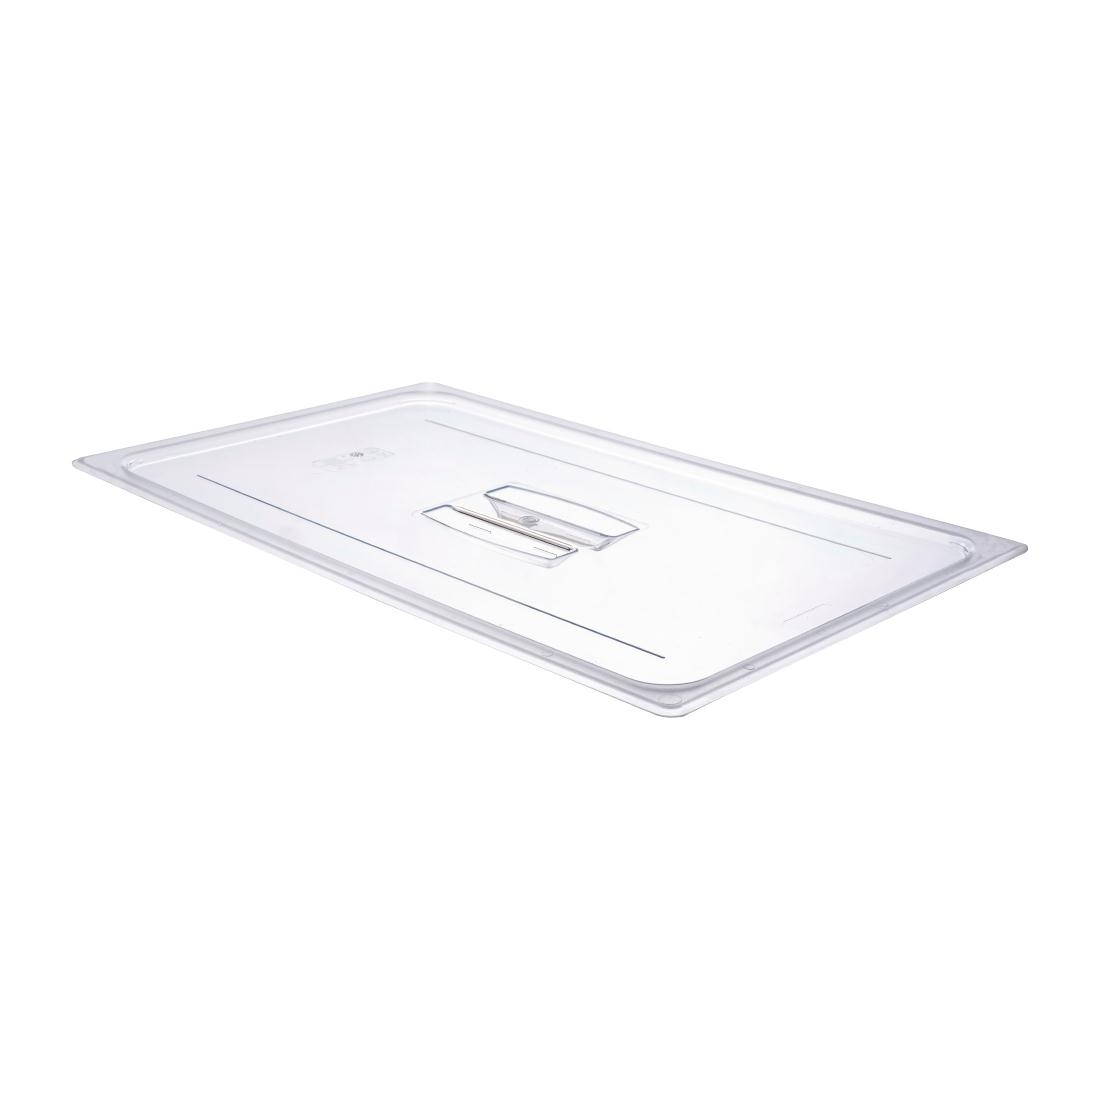 Cambro Polycarbonate 1/1 Gastronorm Pan Lid